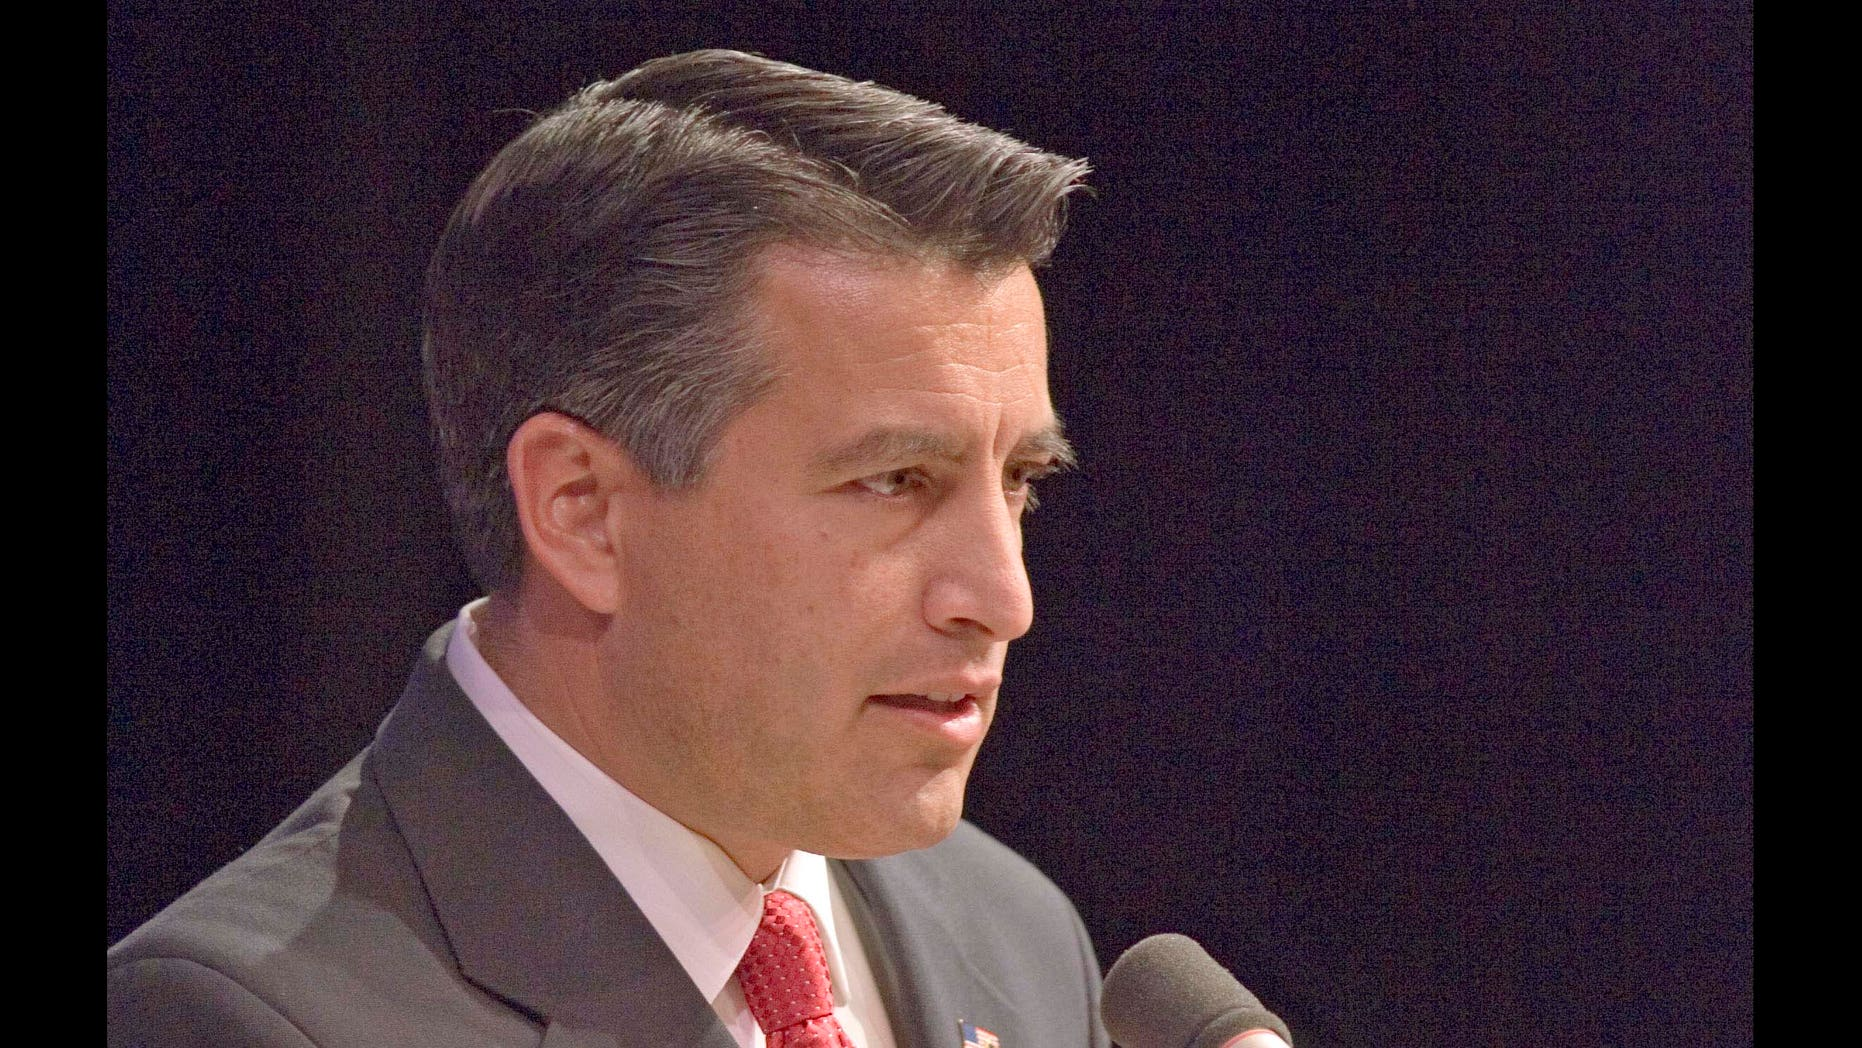 Gubernatorial candidate Brian Sandoval  talks about  Nevada issues during a debate with opponent  Rory Reid Tuesday night, Oct 26, 2010 at Great Basin College Theater in Elko, Nev.  Insults were traded and reputations questioned in a feisty debate Tuesday between Nevada gubernatorial candidates over the state's budget crisis, political ambitions and job experience as early voting winds down and Election Day looms. (AP Photo/Elko Daily Free Press, Ross Andreson).